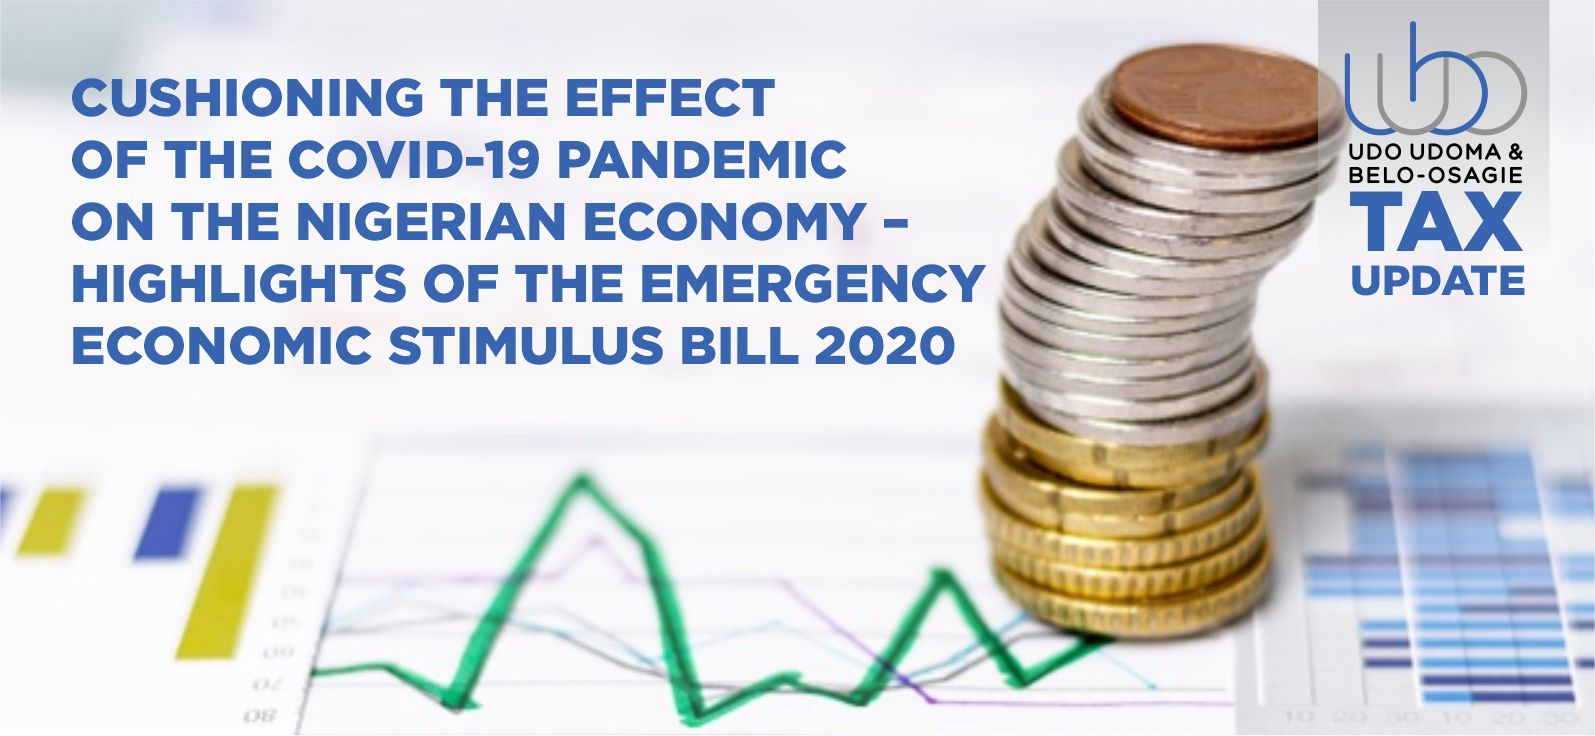 CUSHIONING THE EFFECT OF THE COVID-19 PANDEMIC ON THE NIGERIAN ECONOMY –  HIGHLIGHTS OF THE EMERGENCY ECONOMIC  STIMULUS BILL 2020